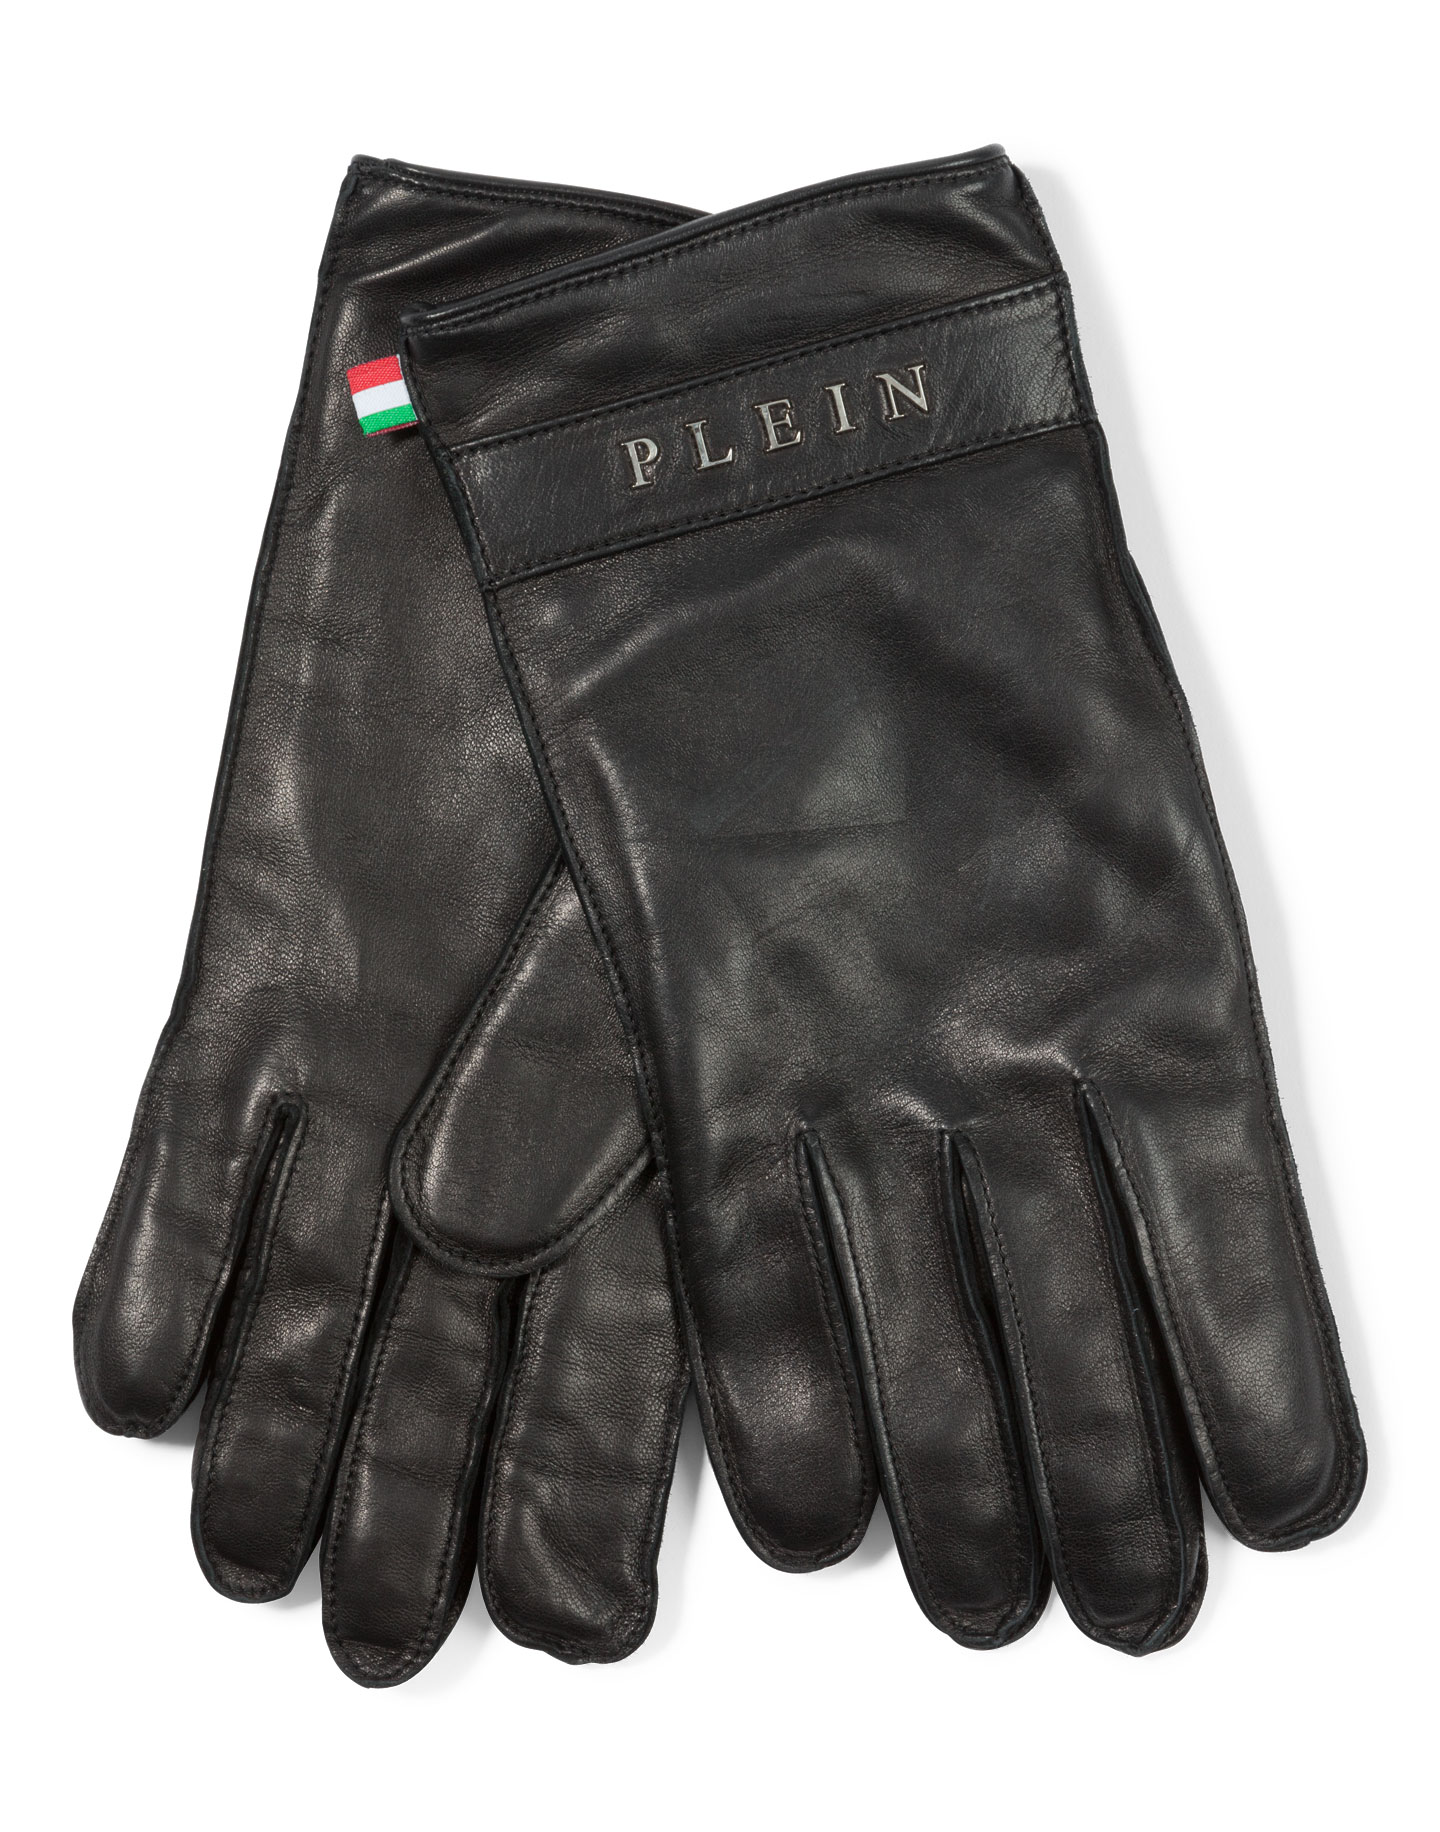 Mens leather driving gloves ireland - Mens Leather Driving Gloves Ireland